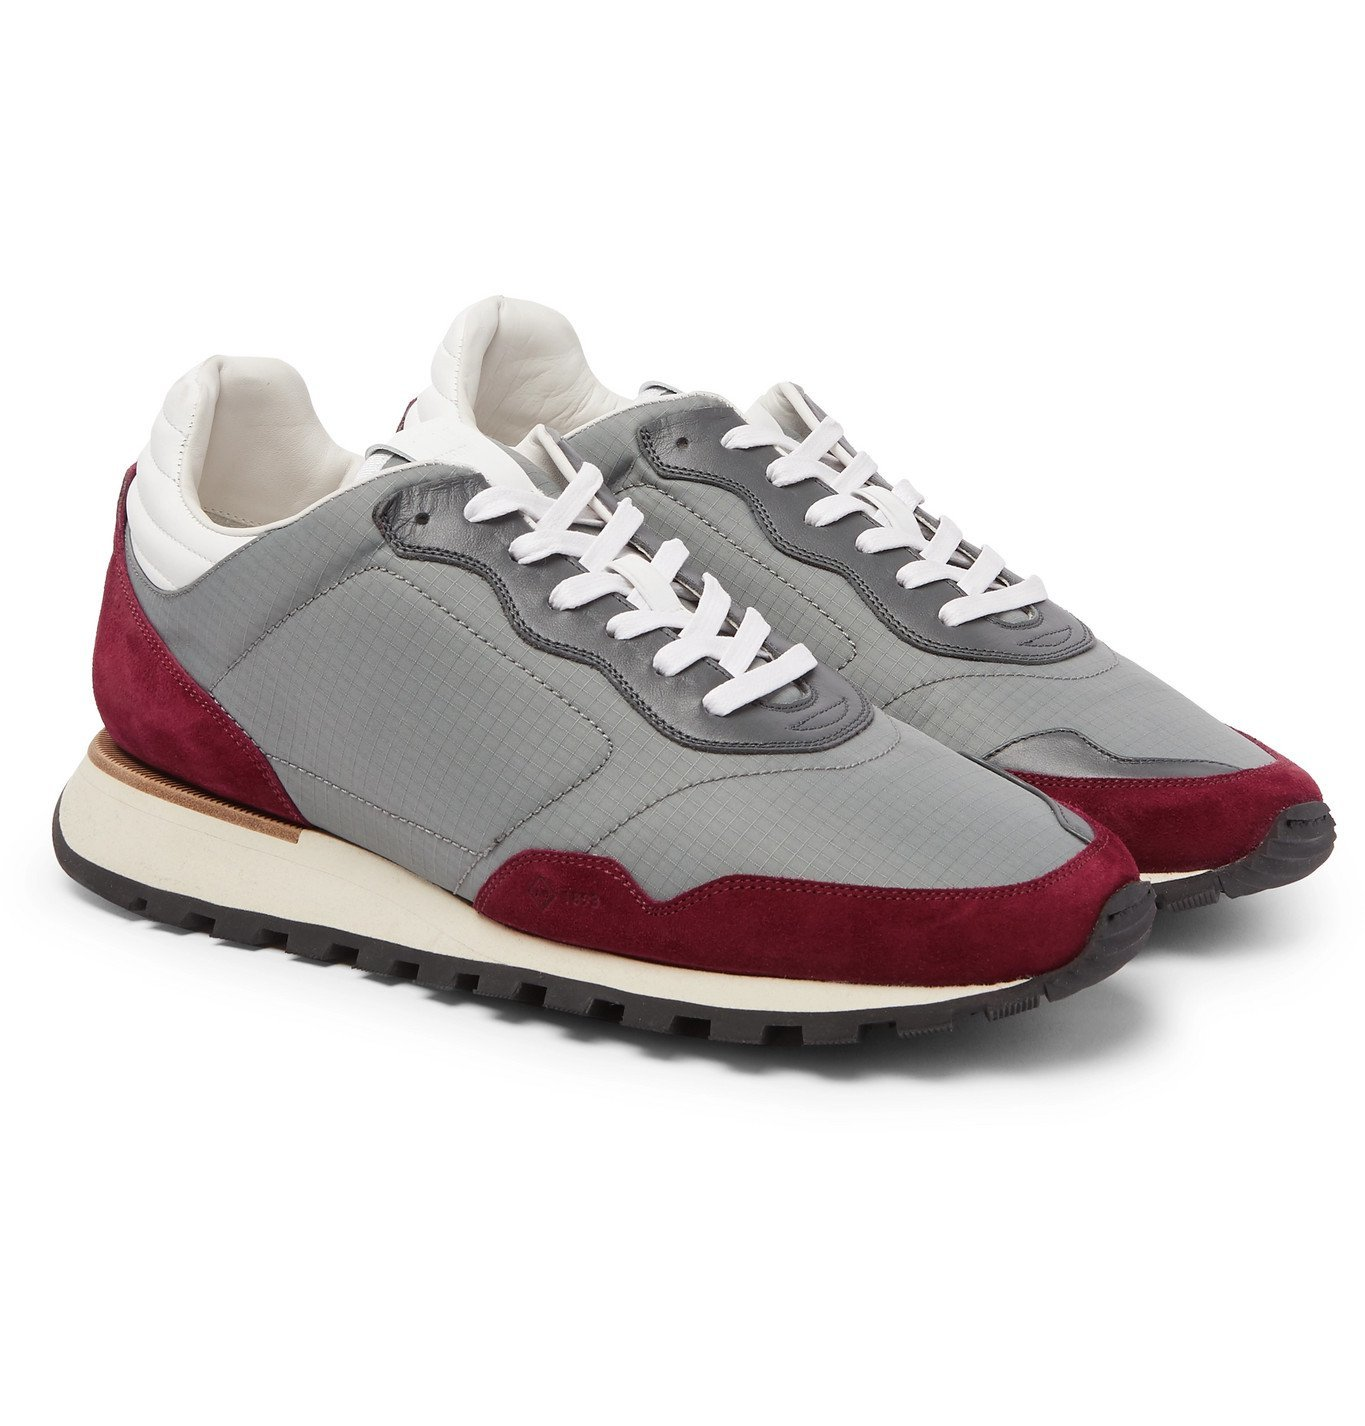 Dunhill - Axis Ripstop, Suede and Leather Sneakers - Gray